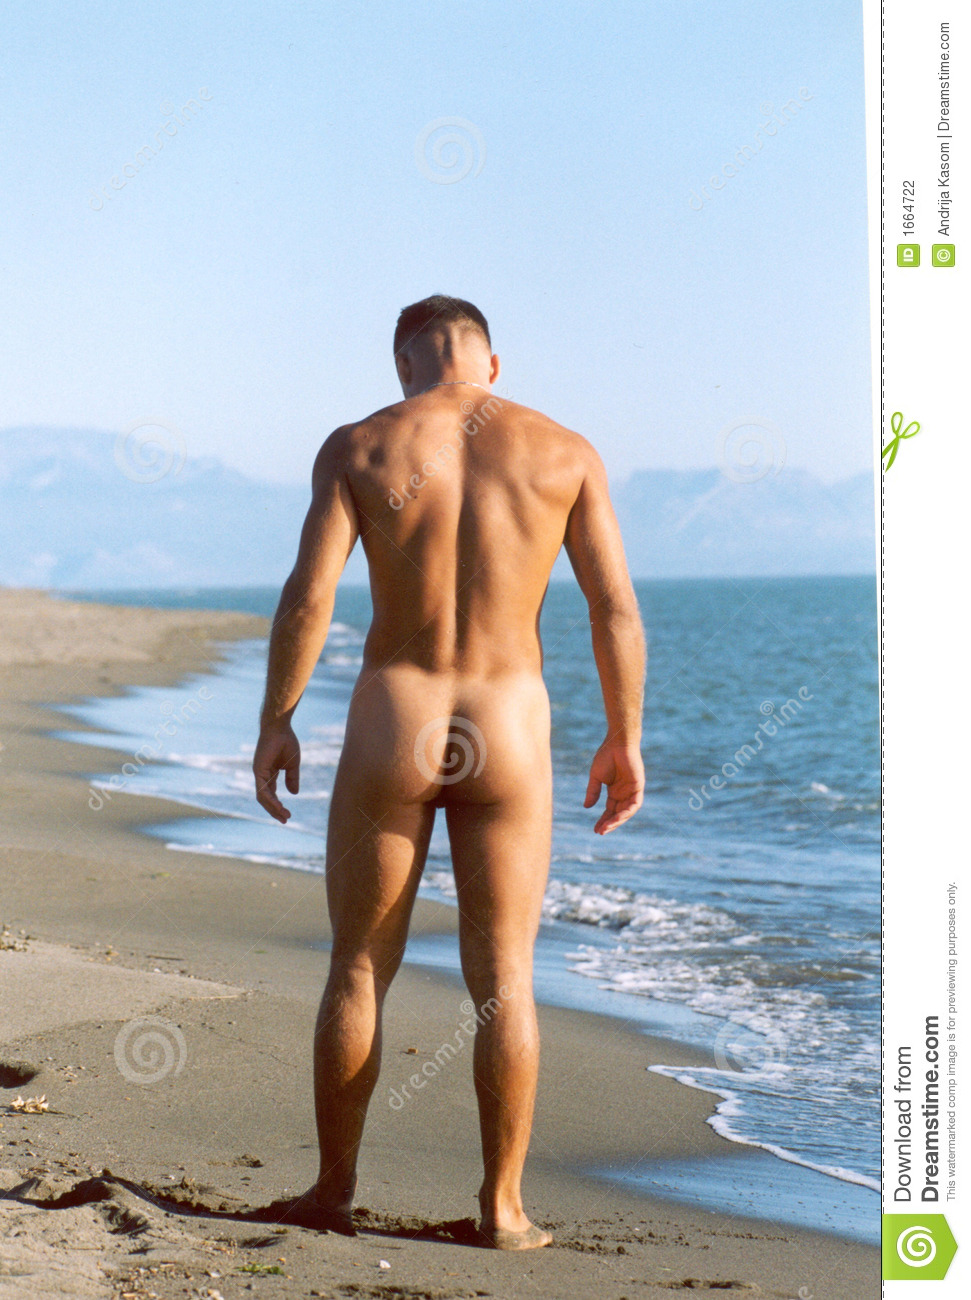 Nude men in nude beaches